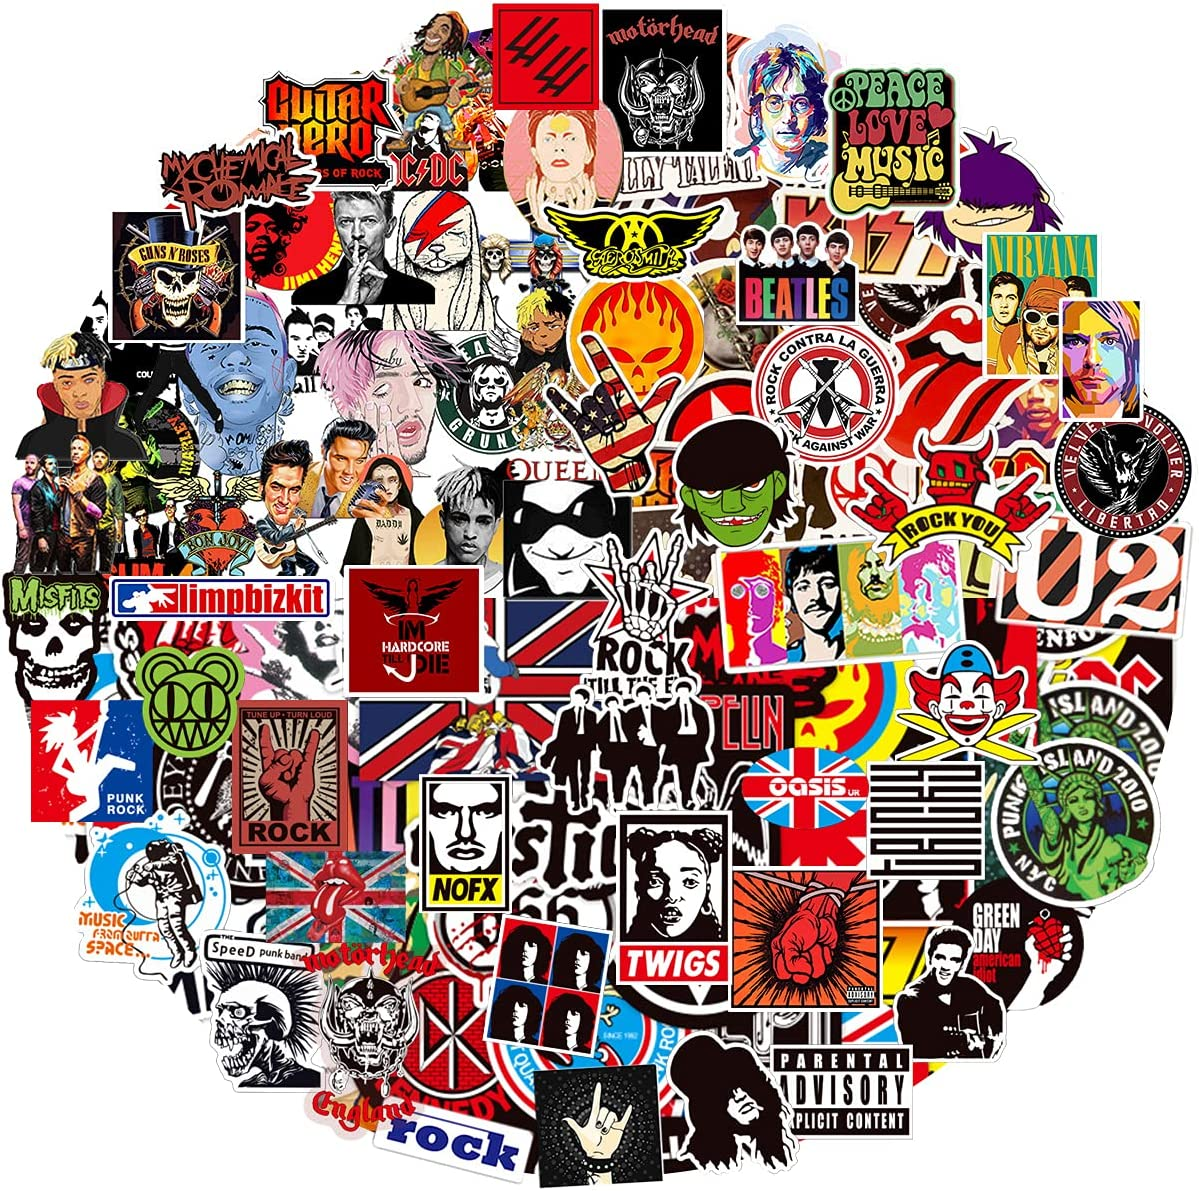 Band Stickers, 200PCS Rock and Roll Music Stickers, Rock Speed Punk Band Vinyl Waterproof Stickers for Laptop, Electronic Organ, Skateboard, Luggage Graffiti ,Guitar, Piano, Helmet Decals